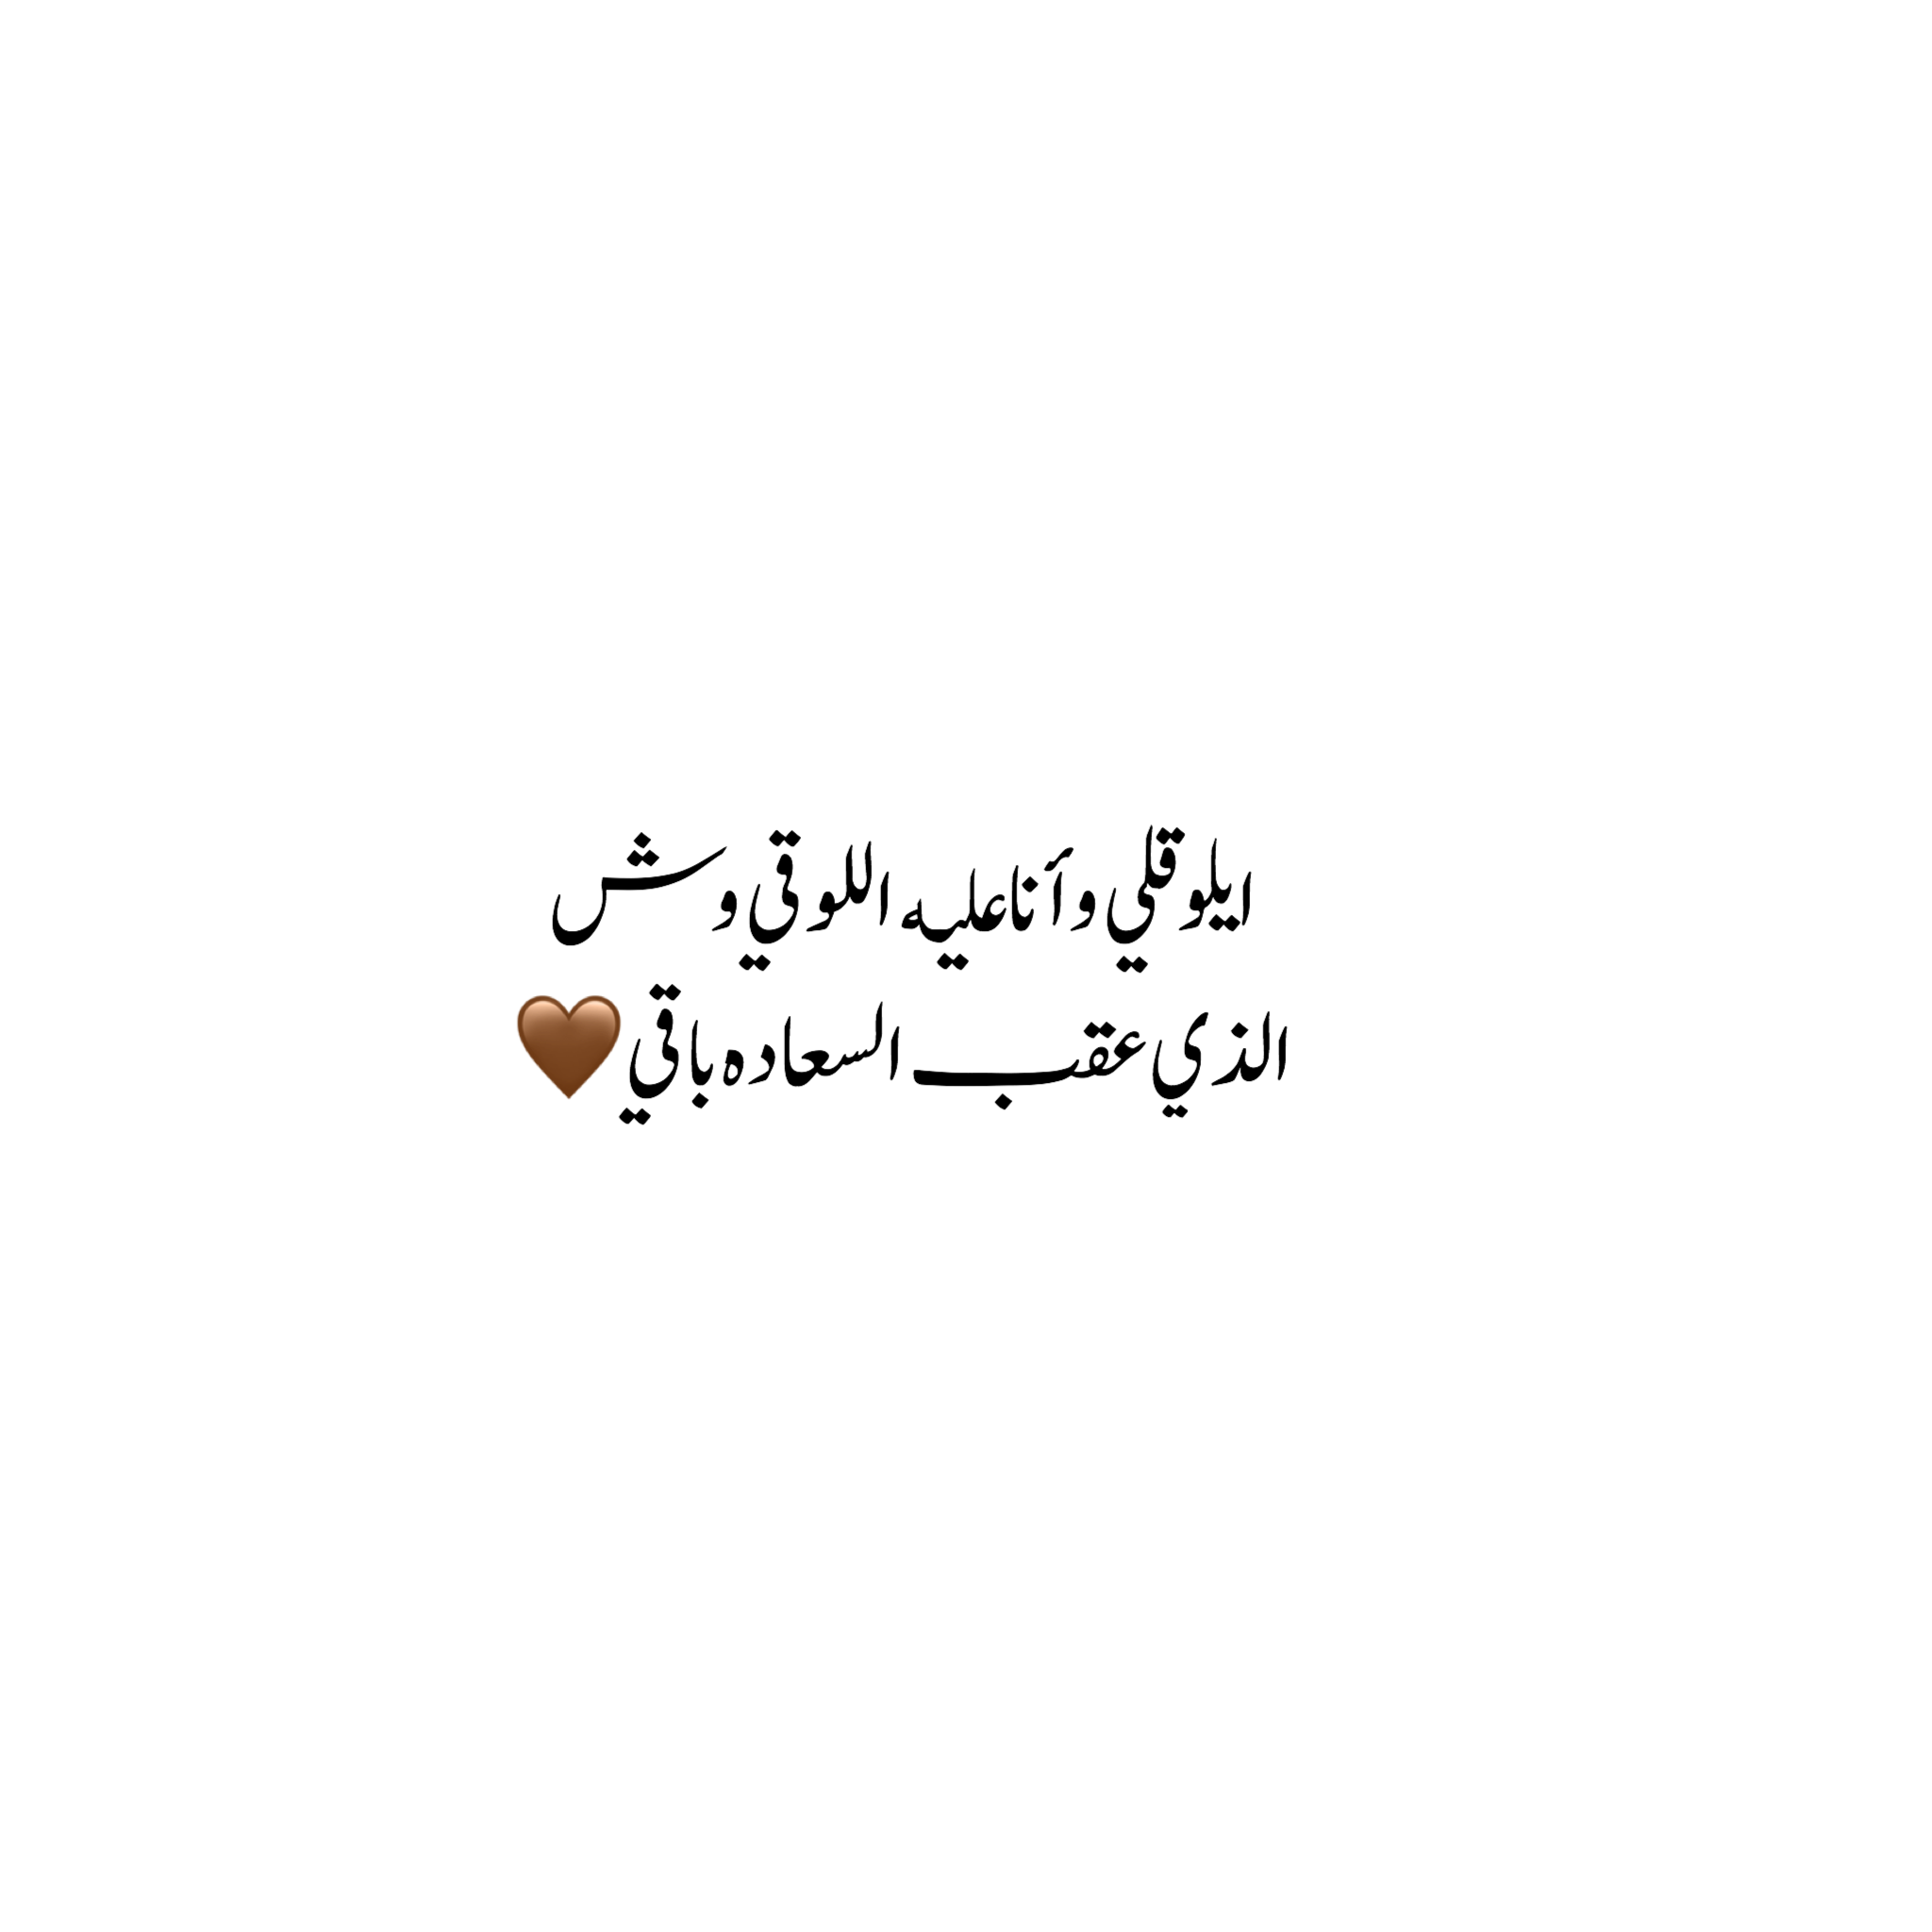 Twitter Smai9x Arabic Love Quotes Love Quotes Wallpaper S